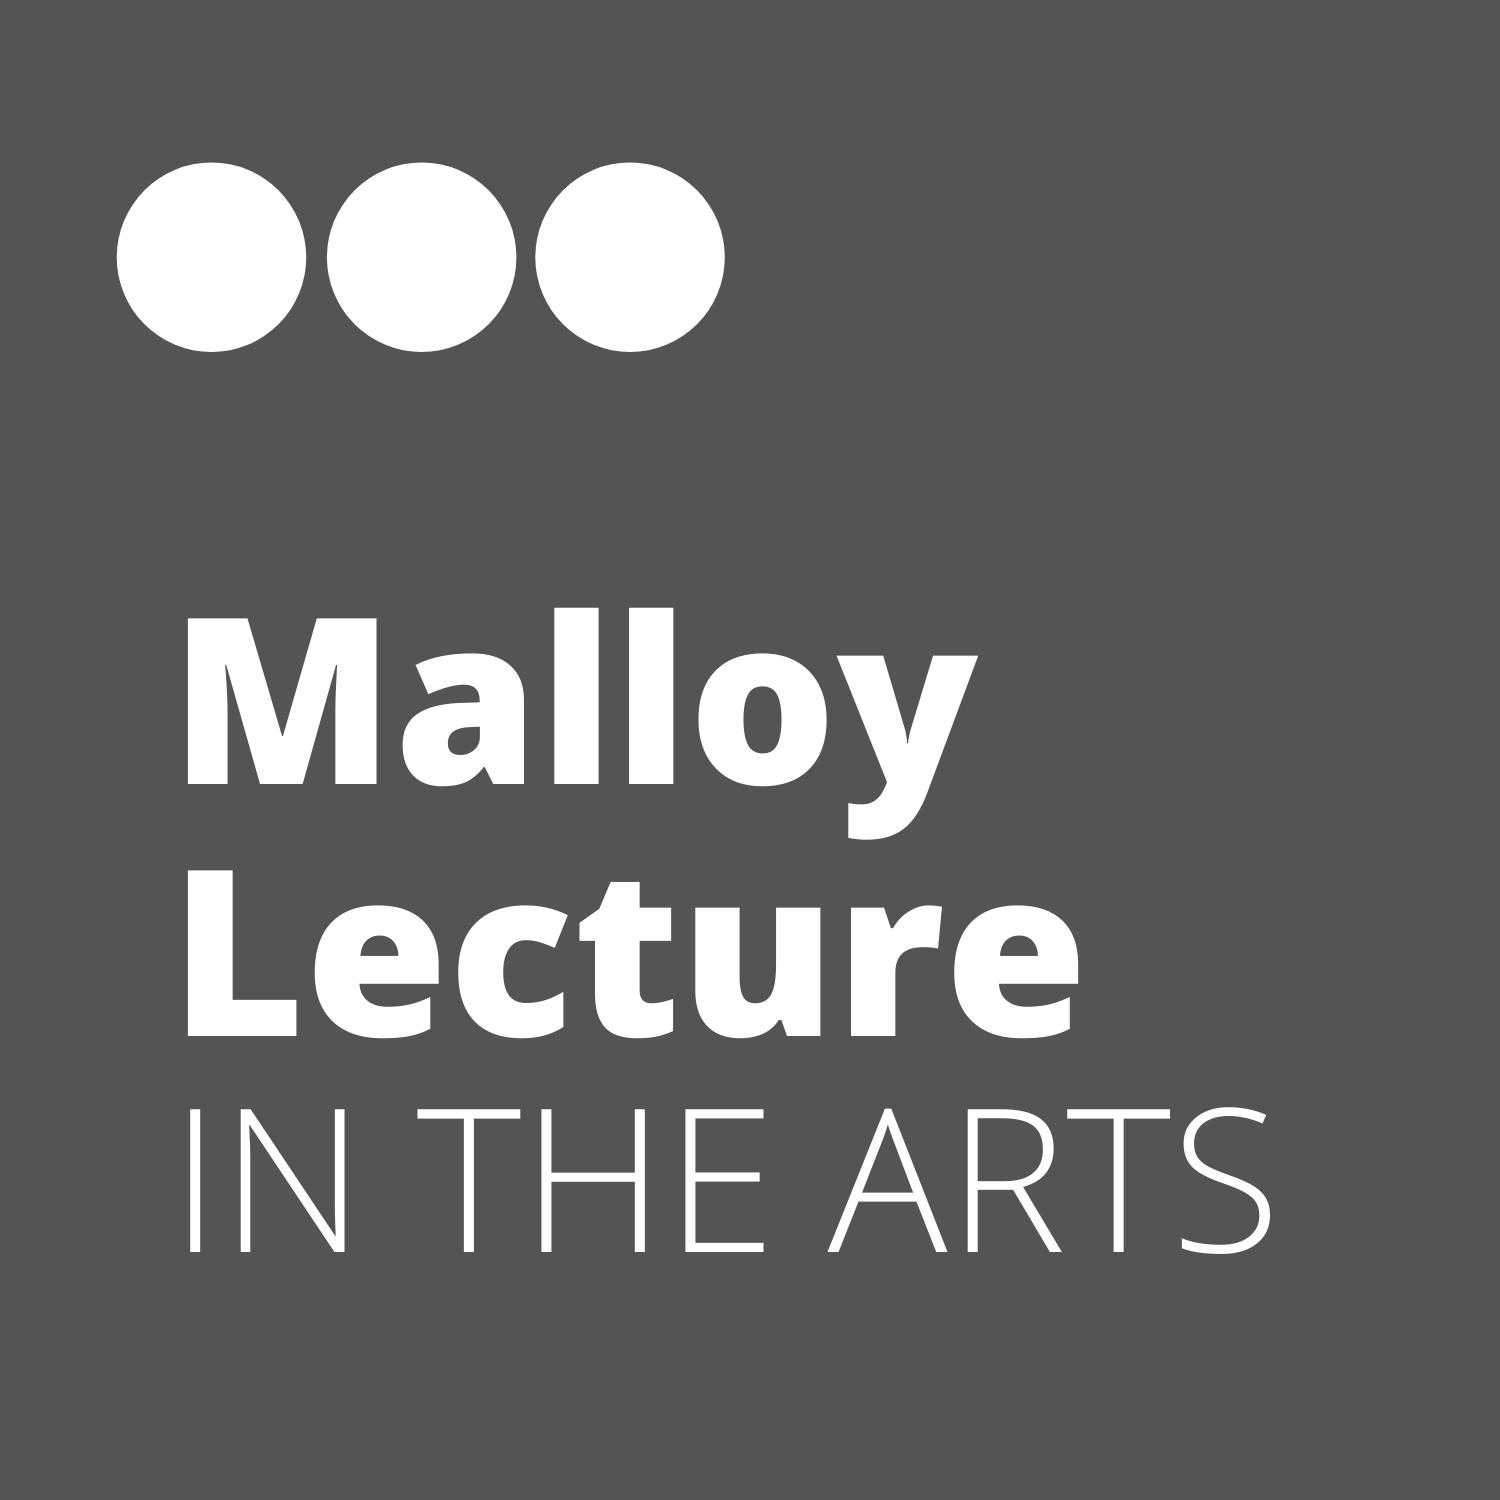 Malloy Lecture in the Arts